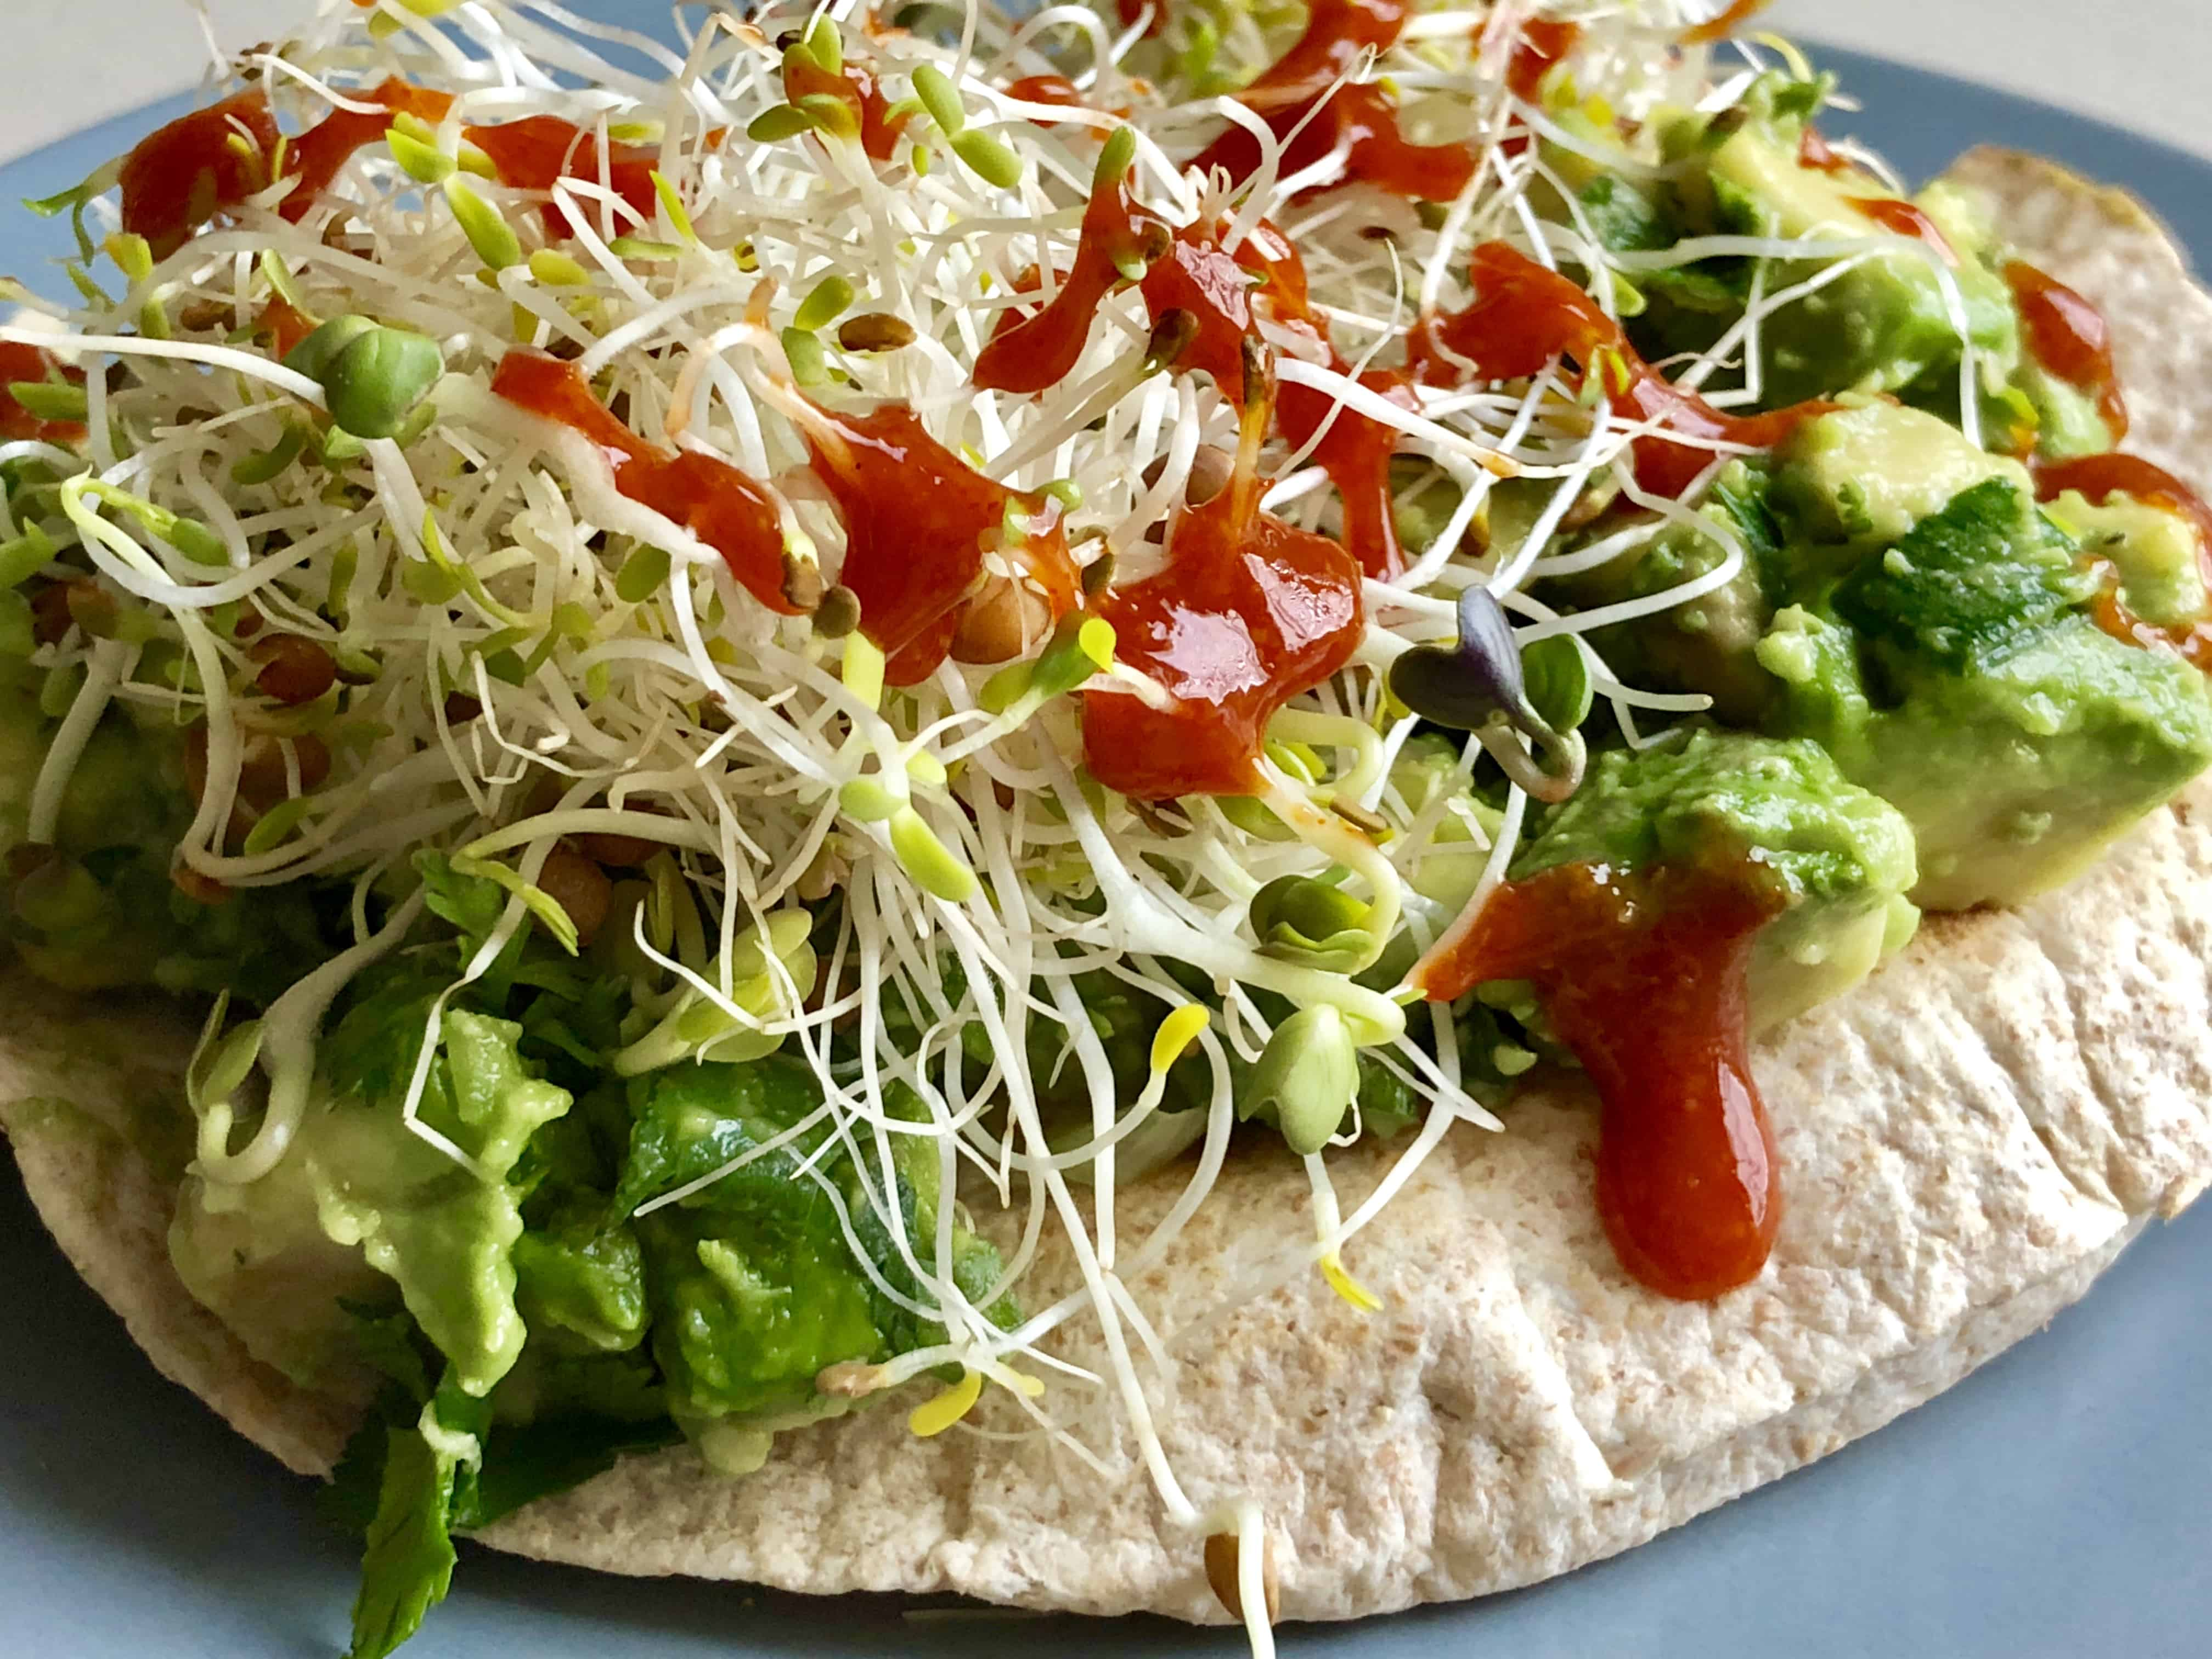 simple avocado salad on tortilla with hot sauce